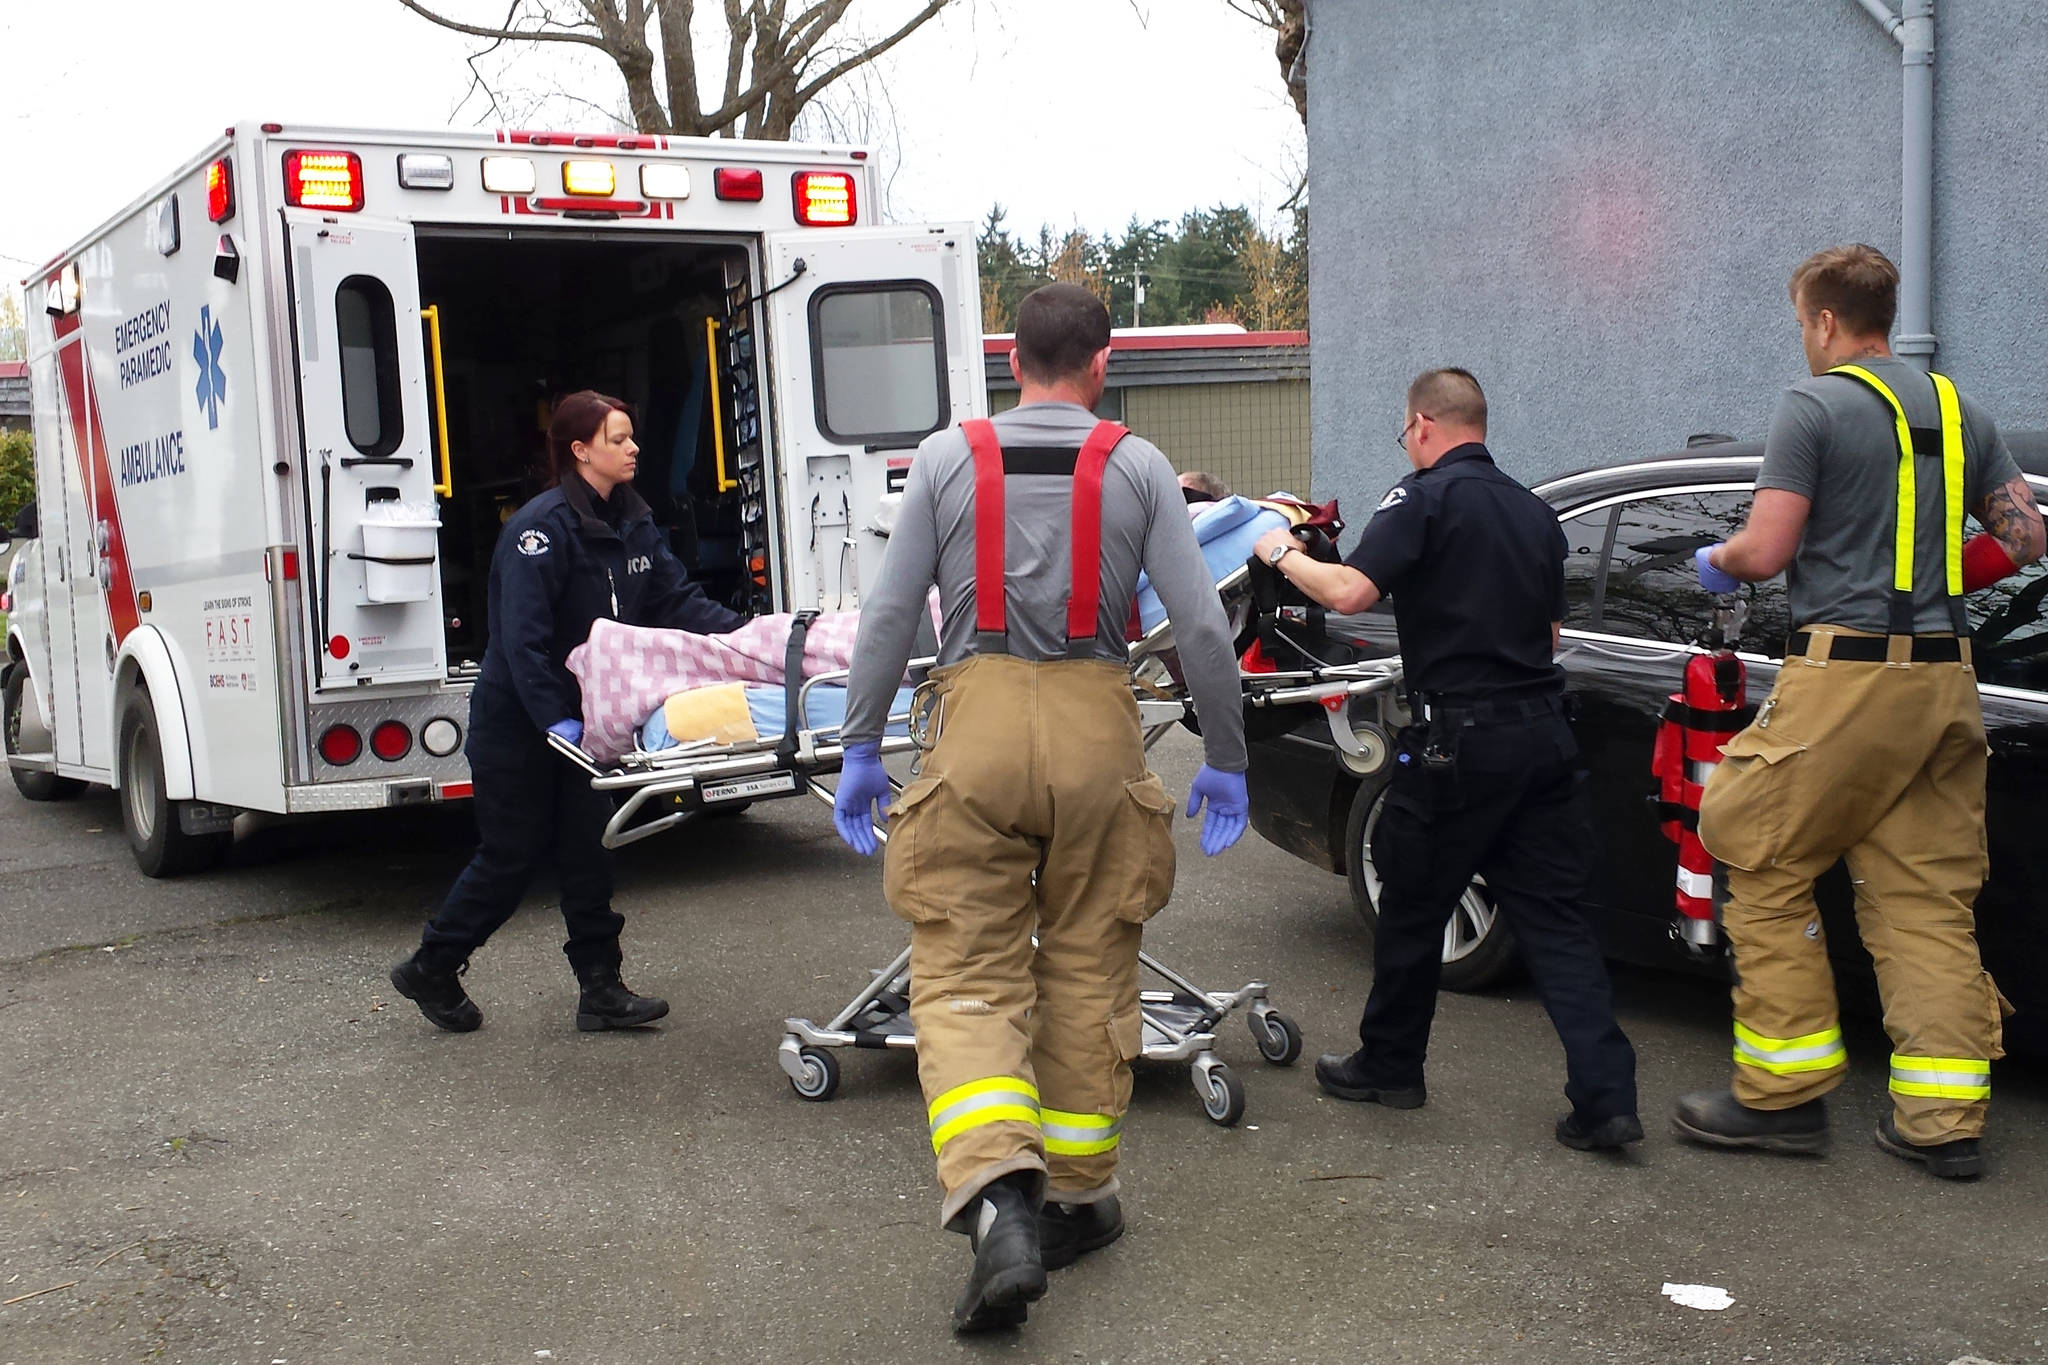 Dan Jack photo First responders prepare to transport an apparent overdose victim in downtown Parksville Saturday morning, April 22, 2017.